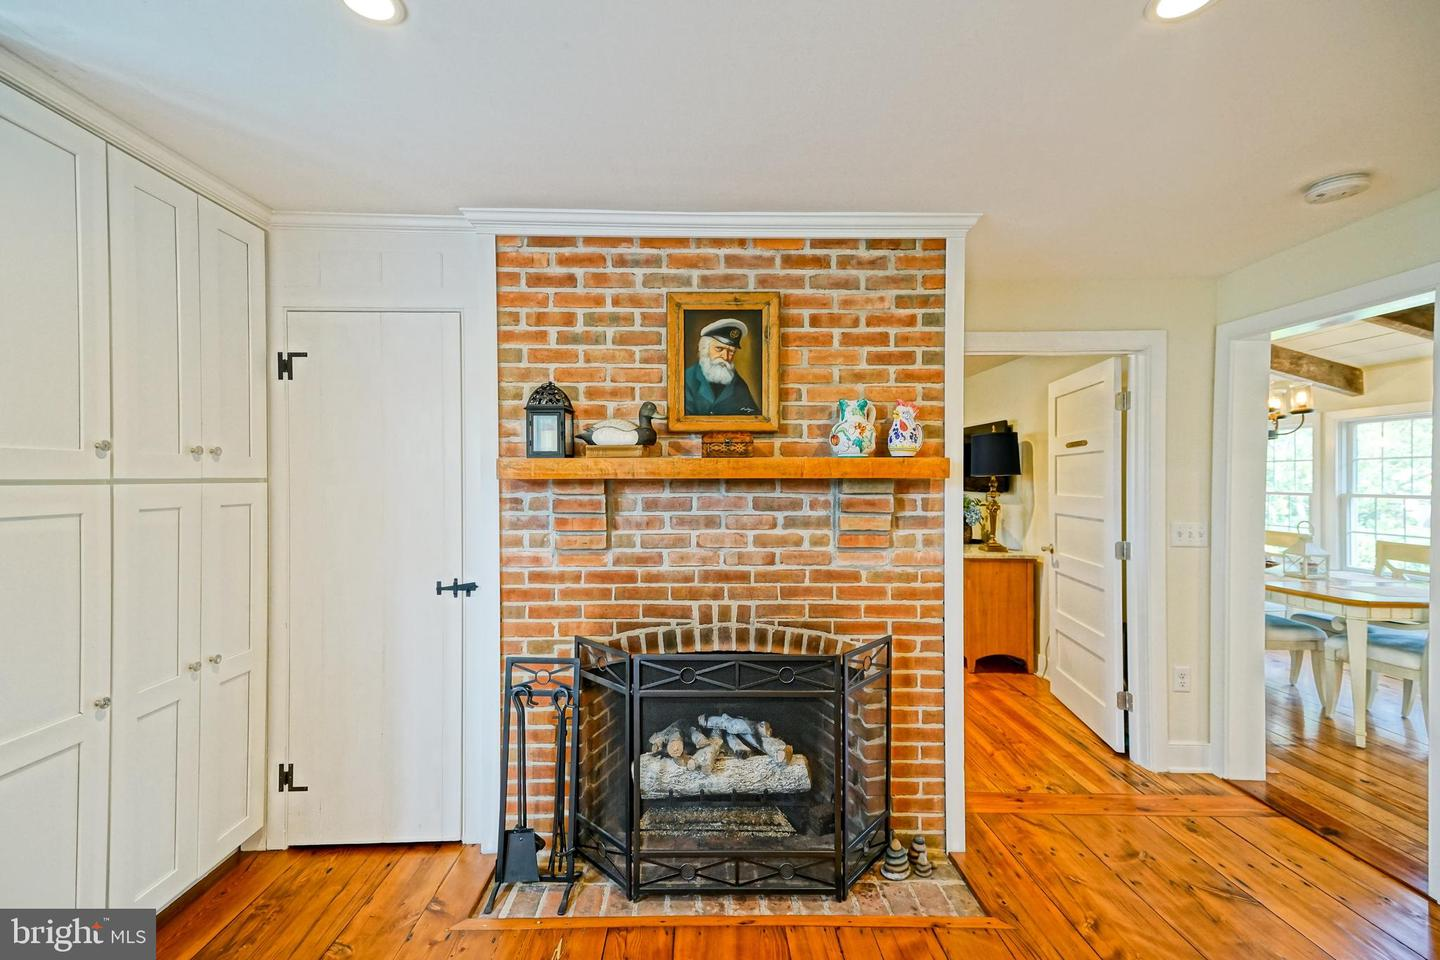 DESU147556-302019818706-2019-11-23-15-34-57 36 Shipcarpenter Sq | Lewes, DE Real Estate For Sale | MLS# Desu147556  - Lee Ann Group